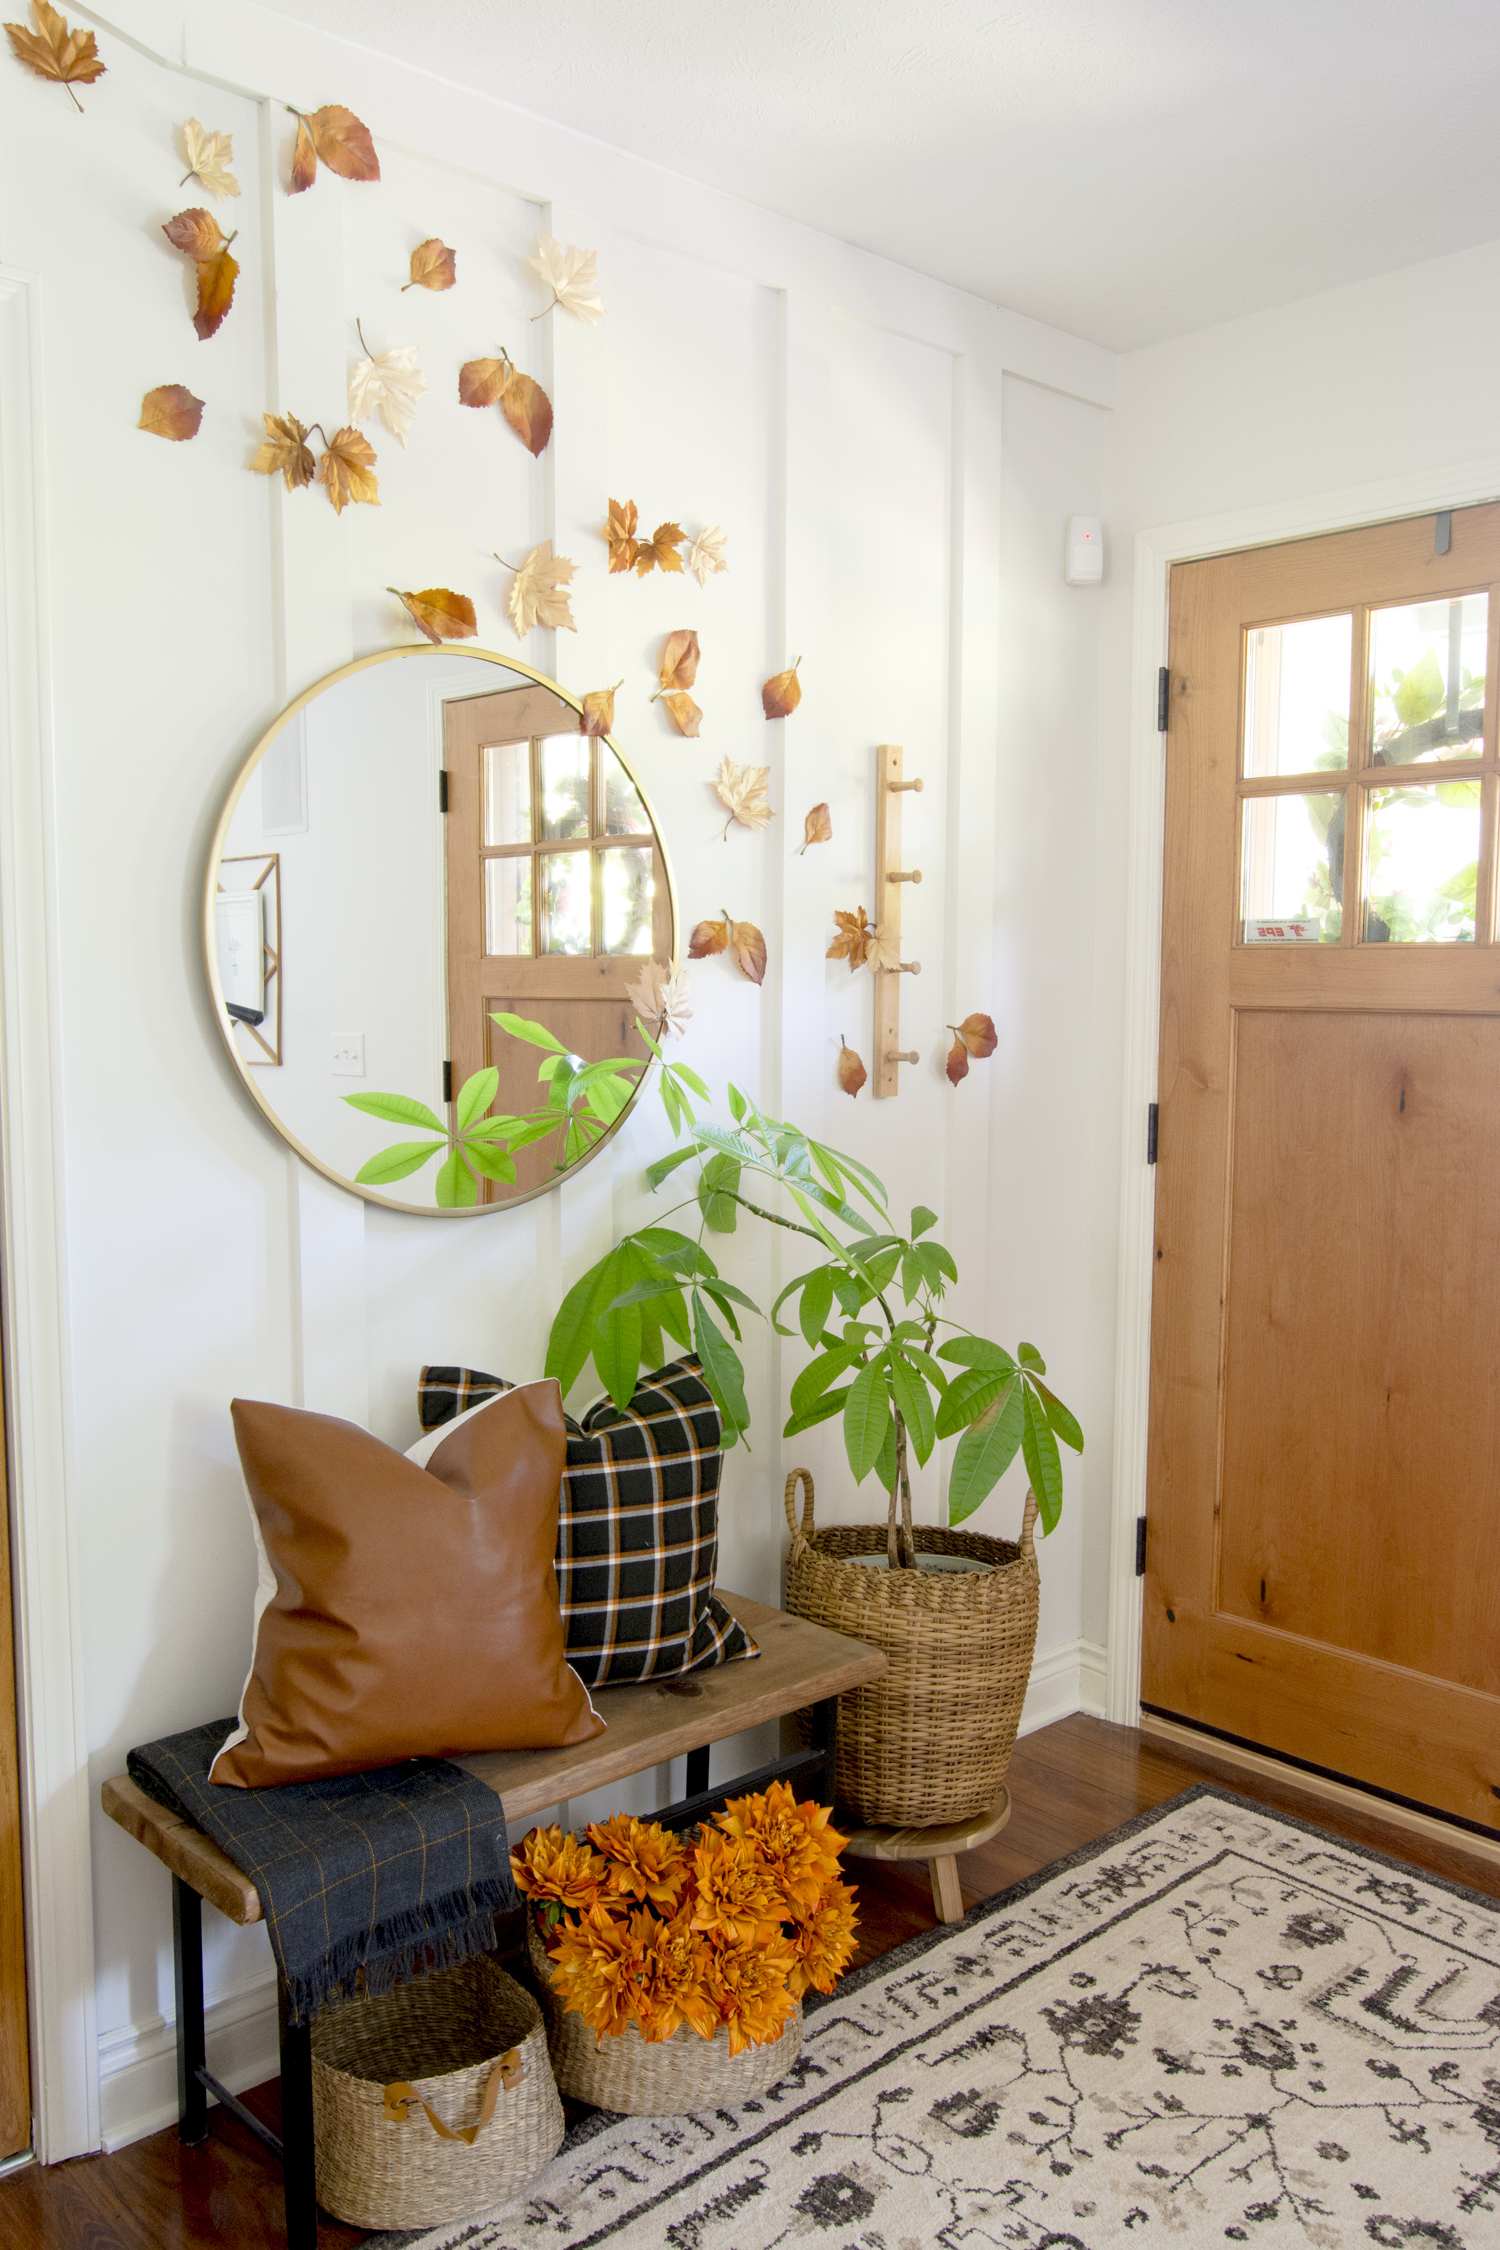 Diy Fall Decorations (View 14 of 20)